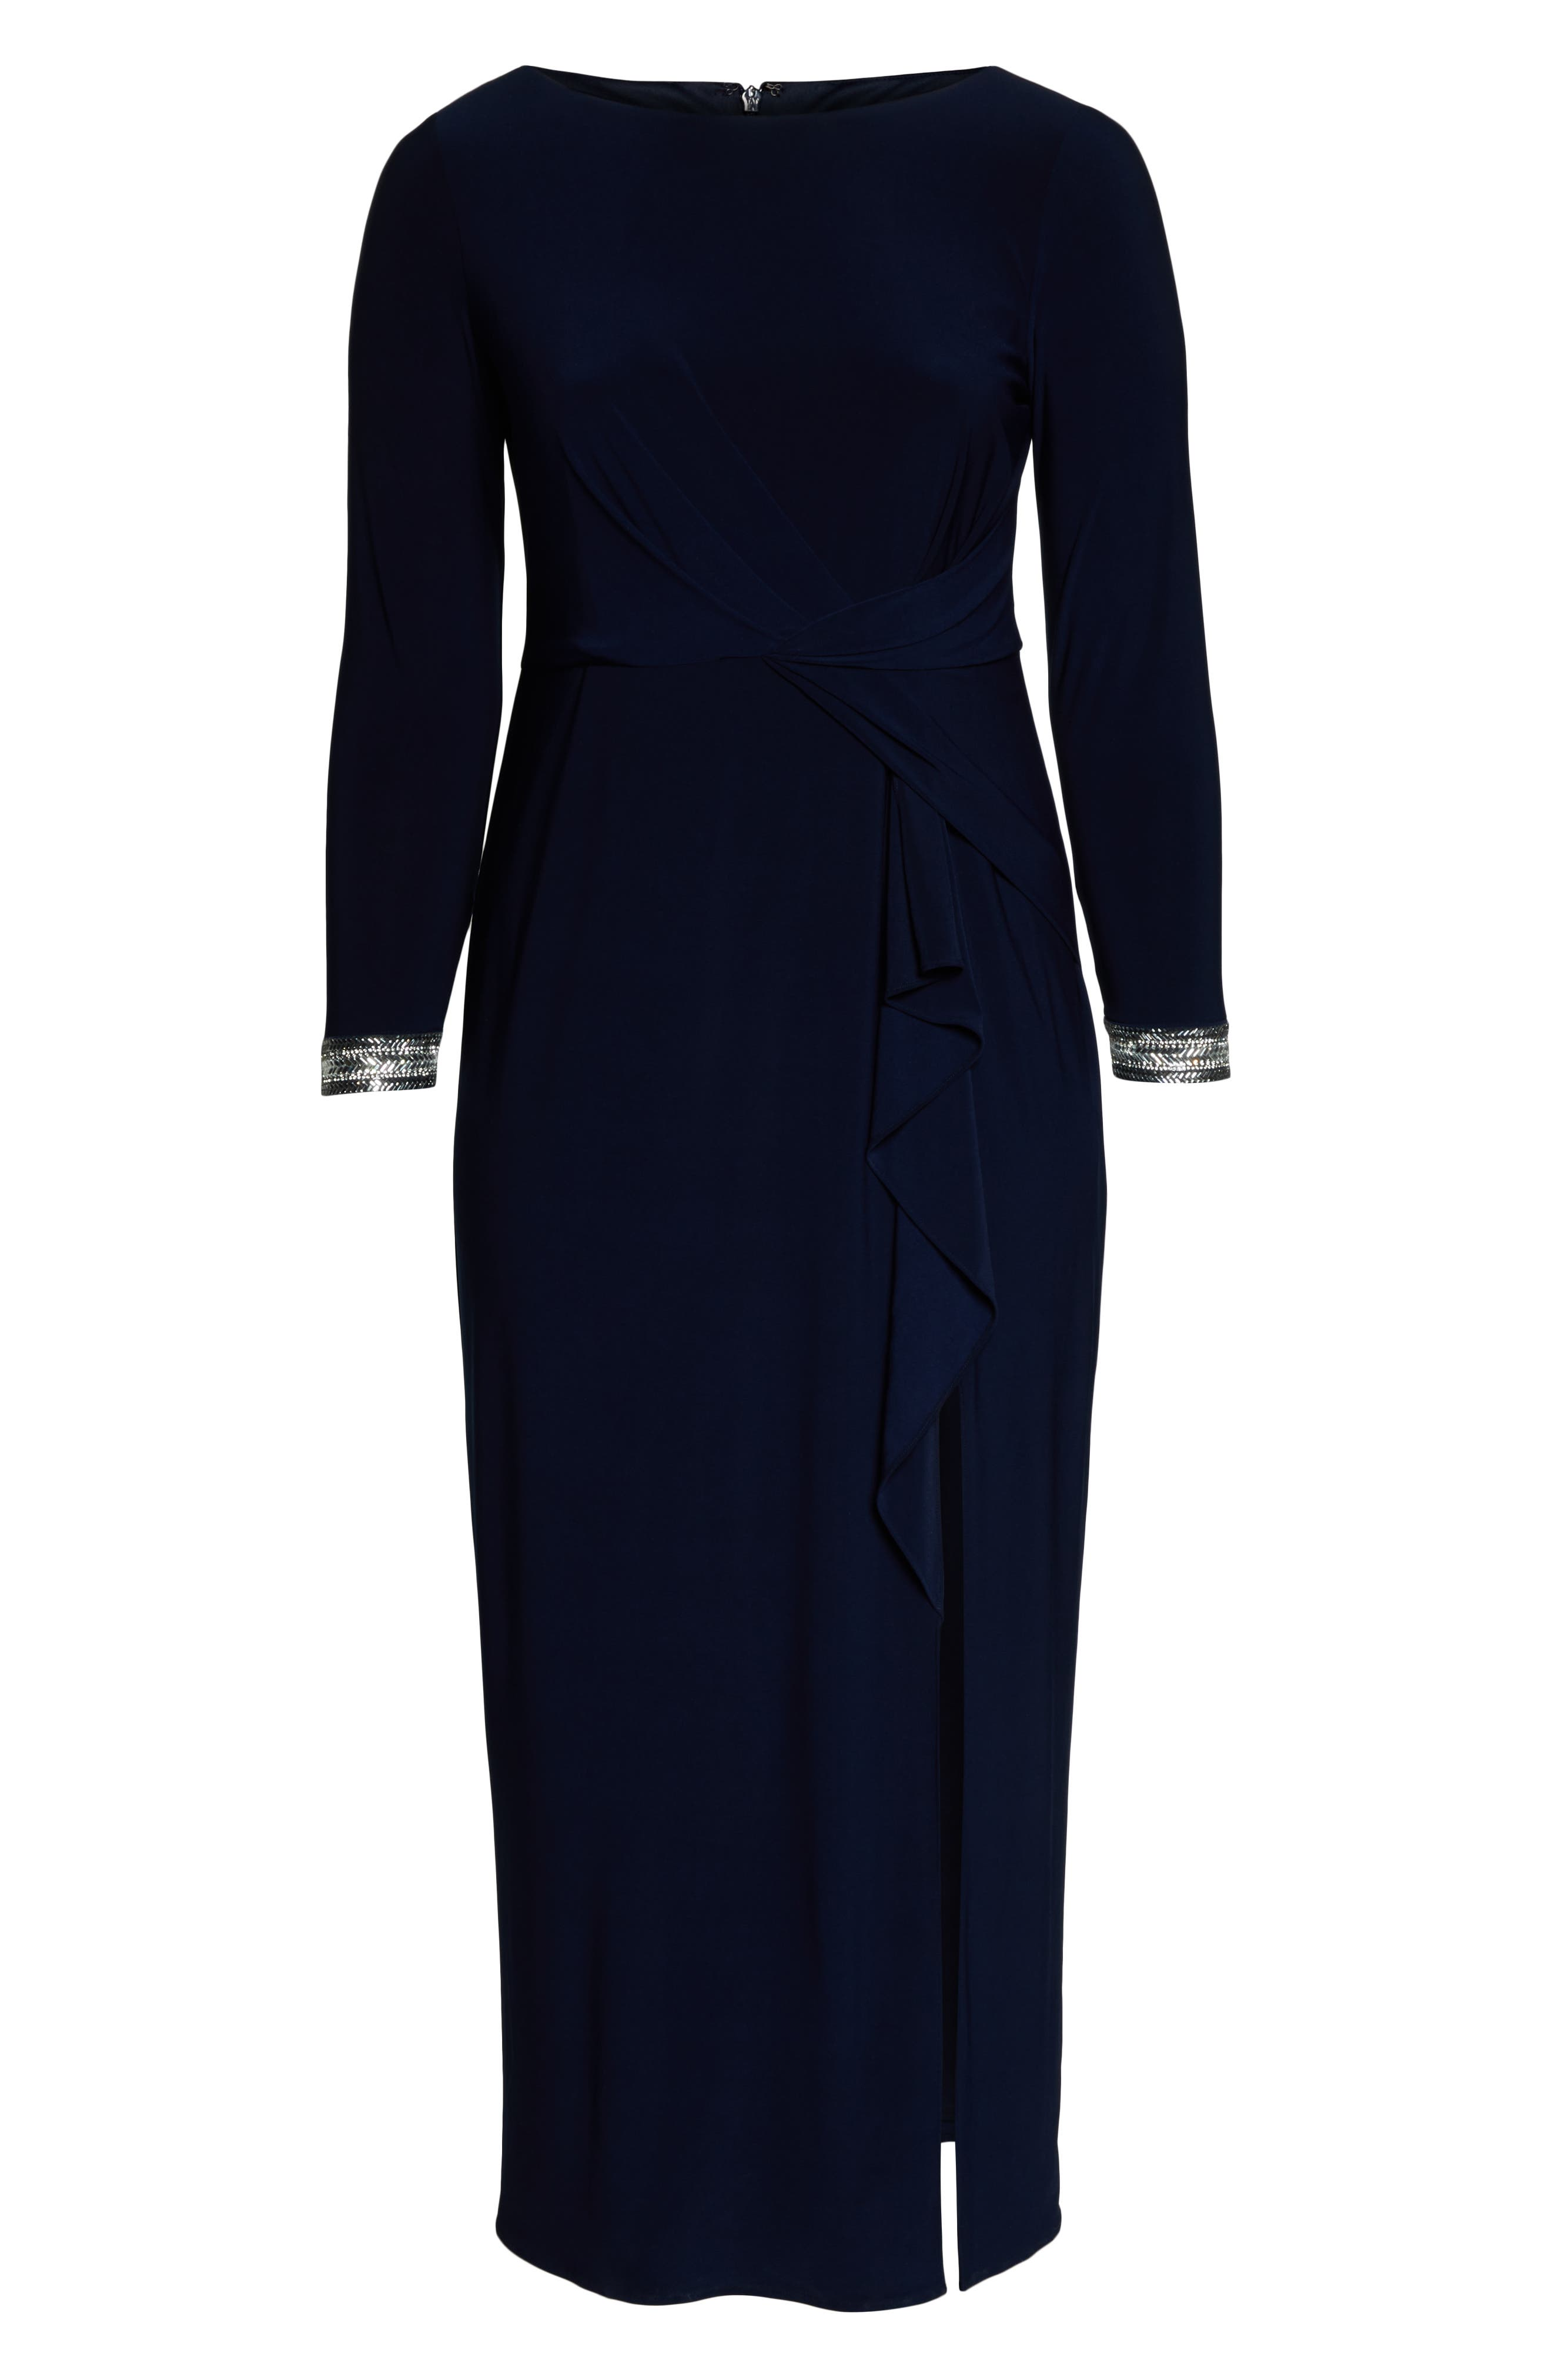 VINCE CAMUTO, Beaded Cuff Ruched Jersey Gown, Alternate thumbnail 7, color, NAVY